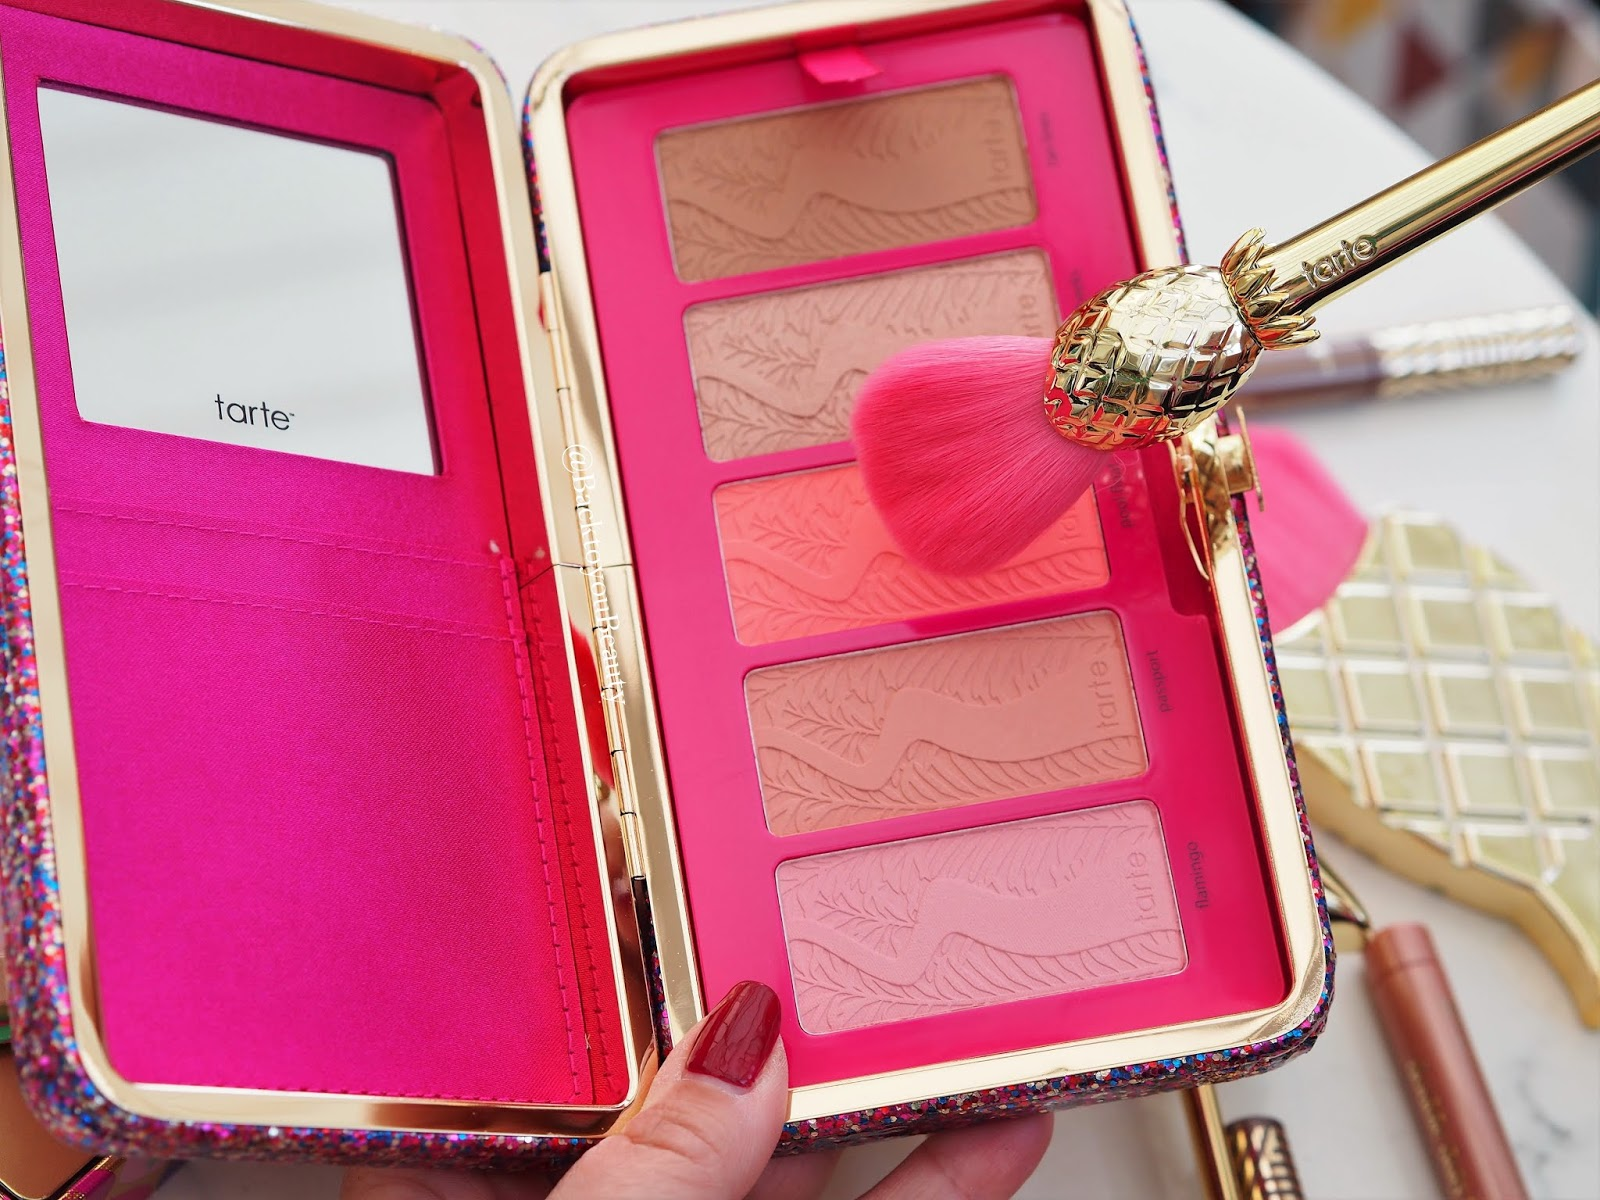 Tarte Life of the party clutch